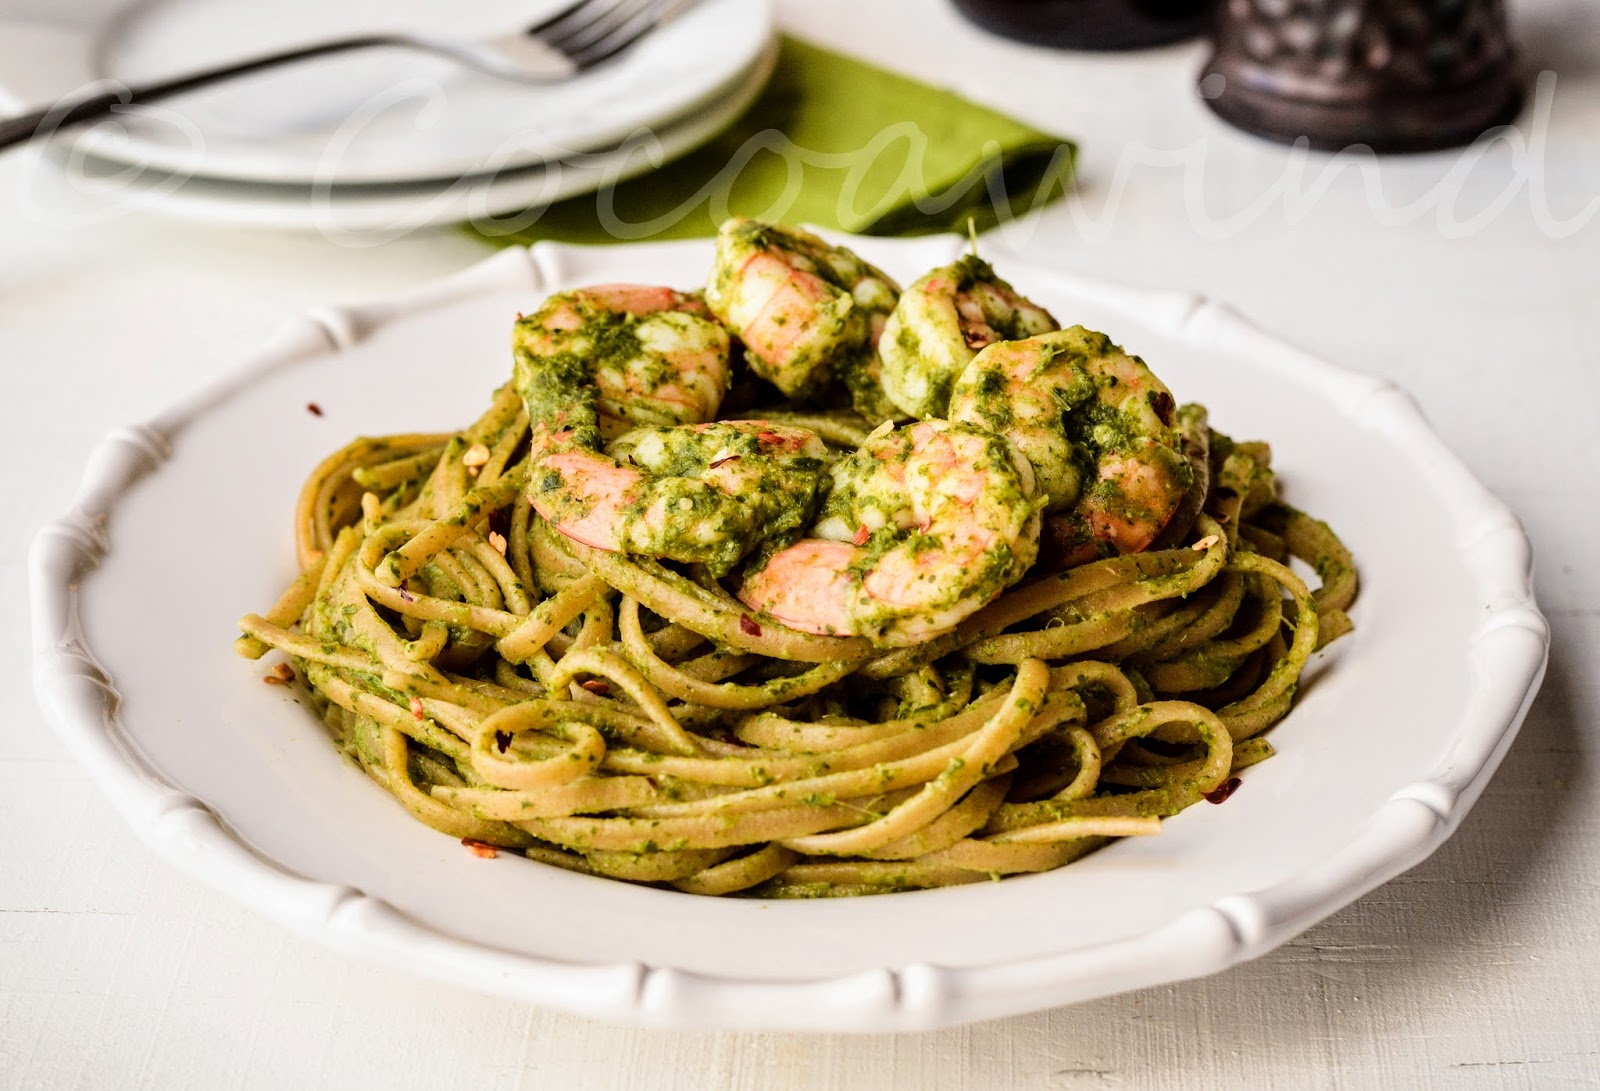 Linguine with Spinach Pesto and Shrimp